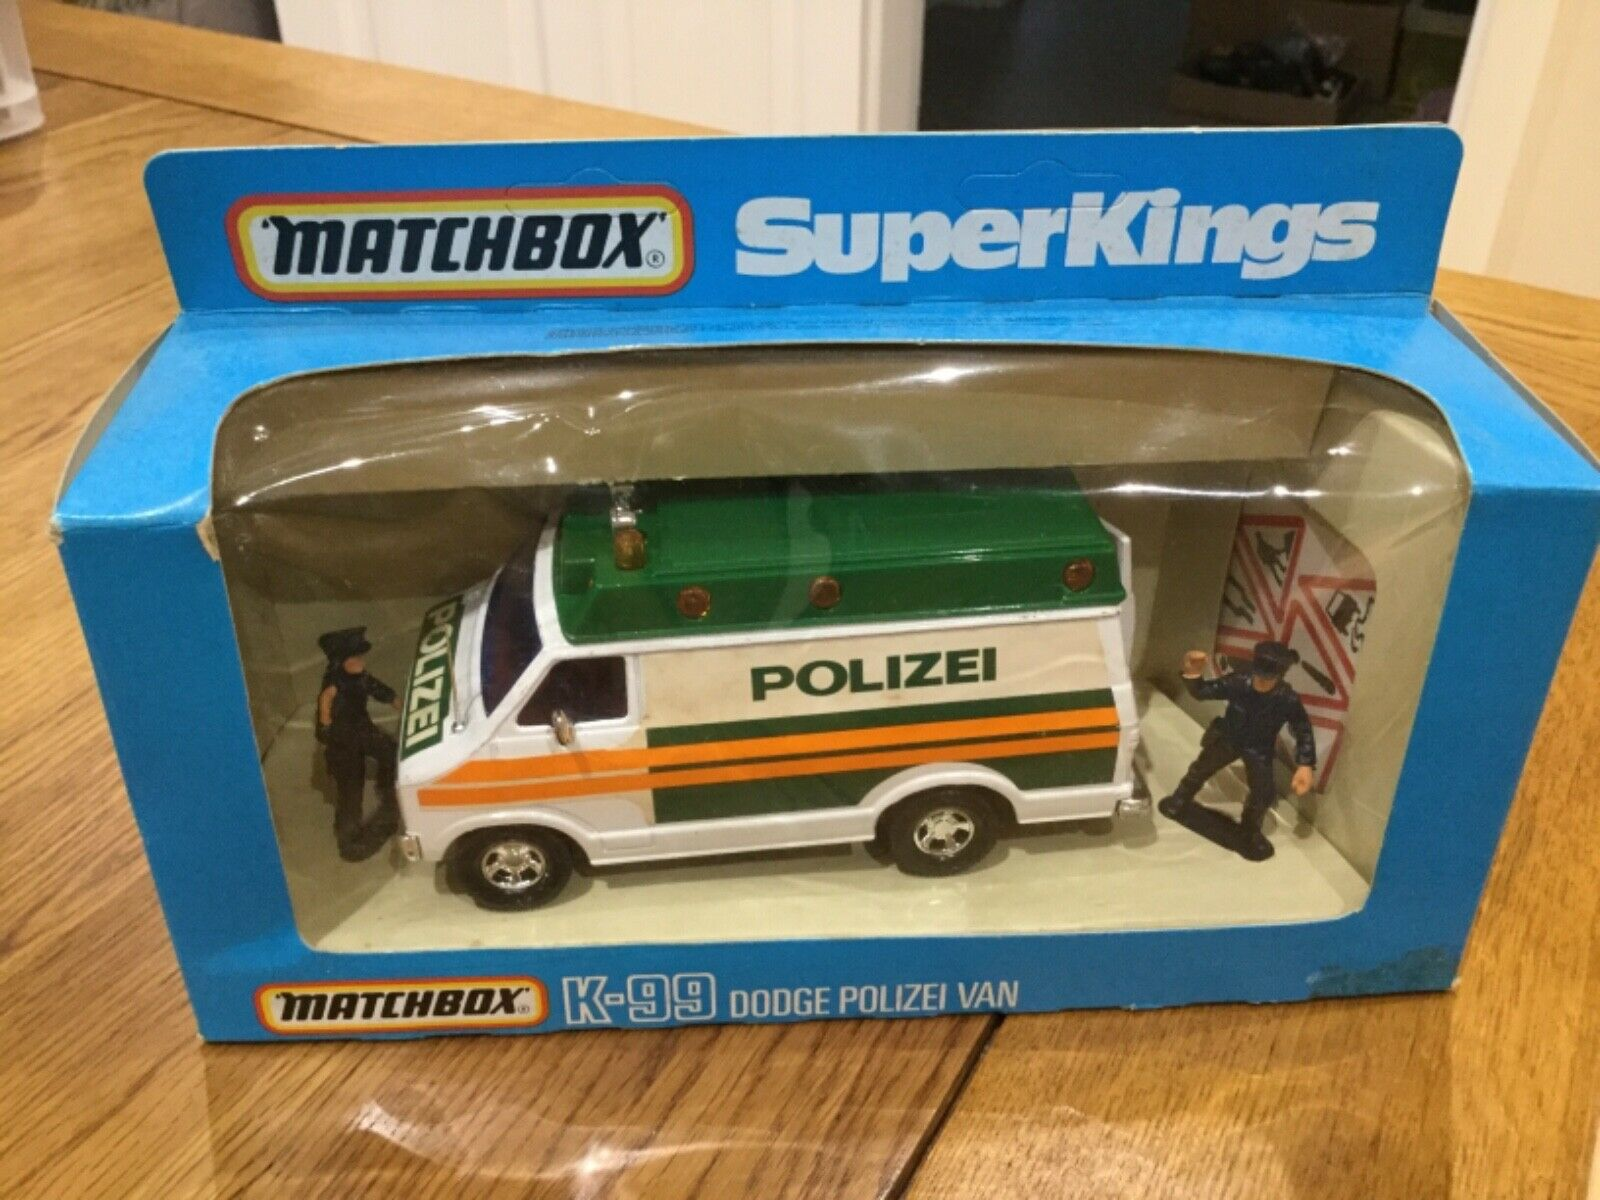 Matchbox Moko Lesney Superkings K99 DODGE POLIZEI Van